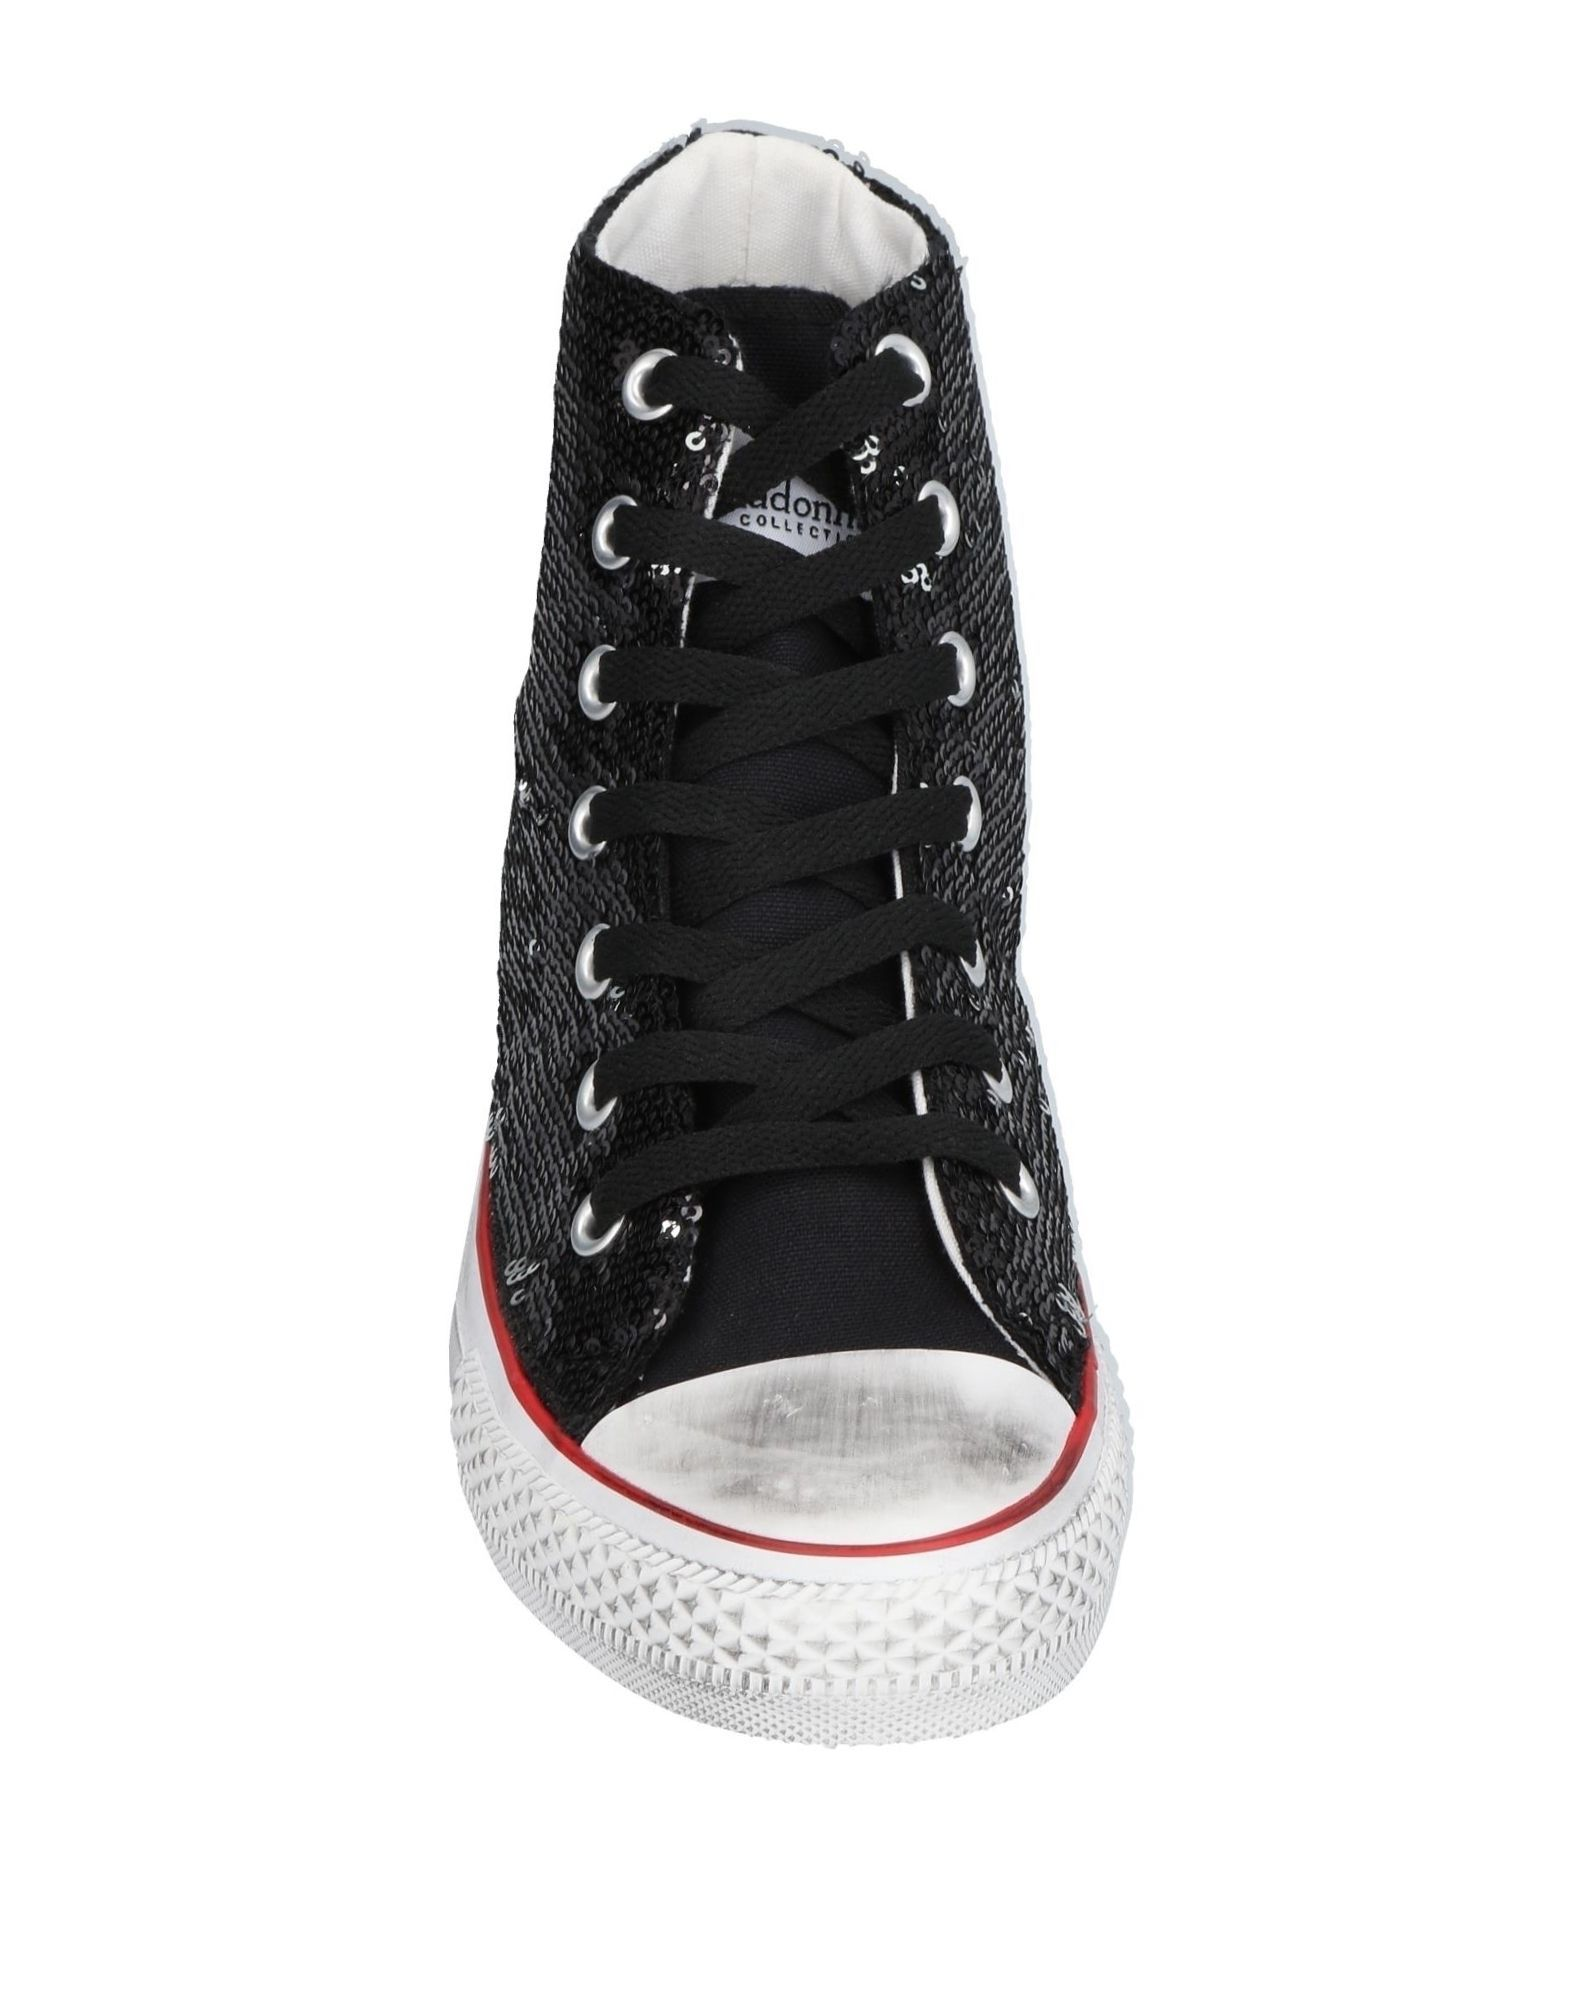 Primadonna Black High Top Sneakers